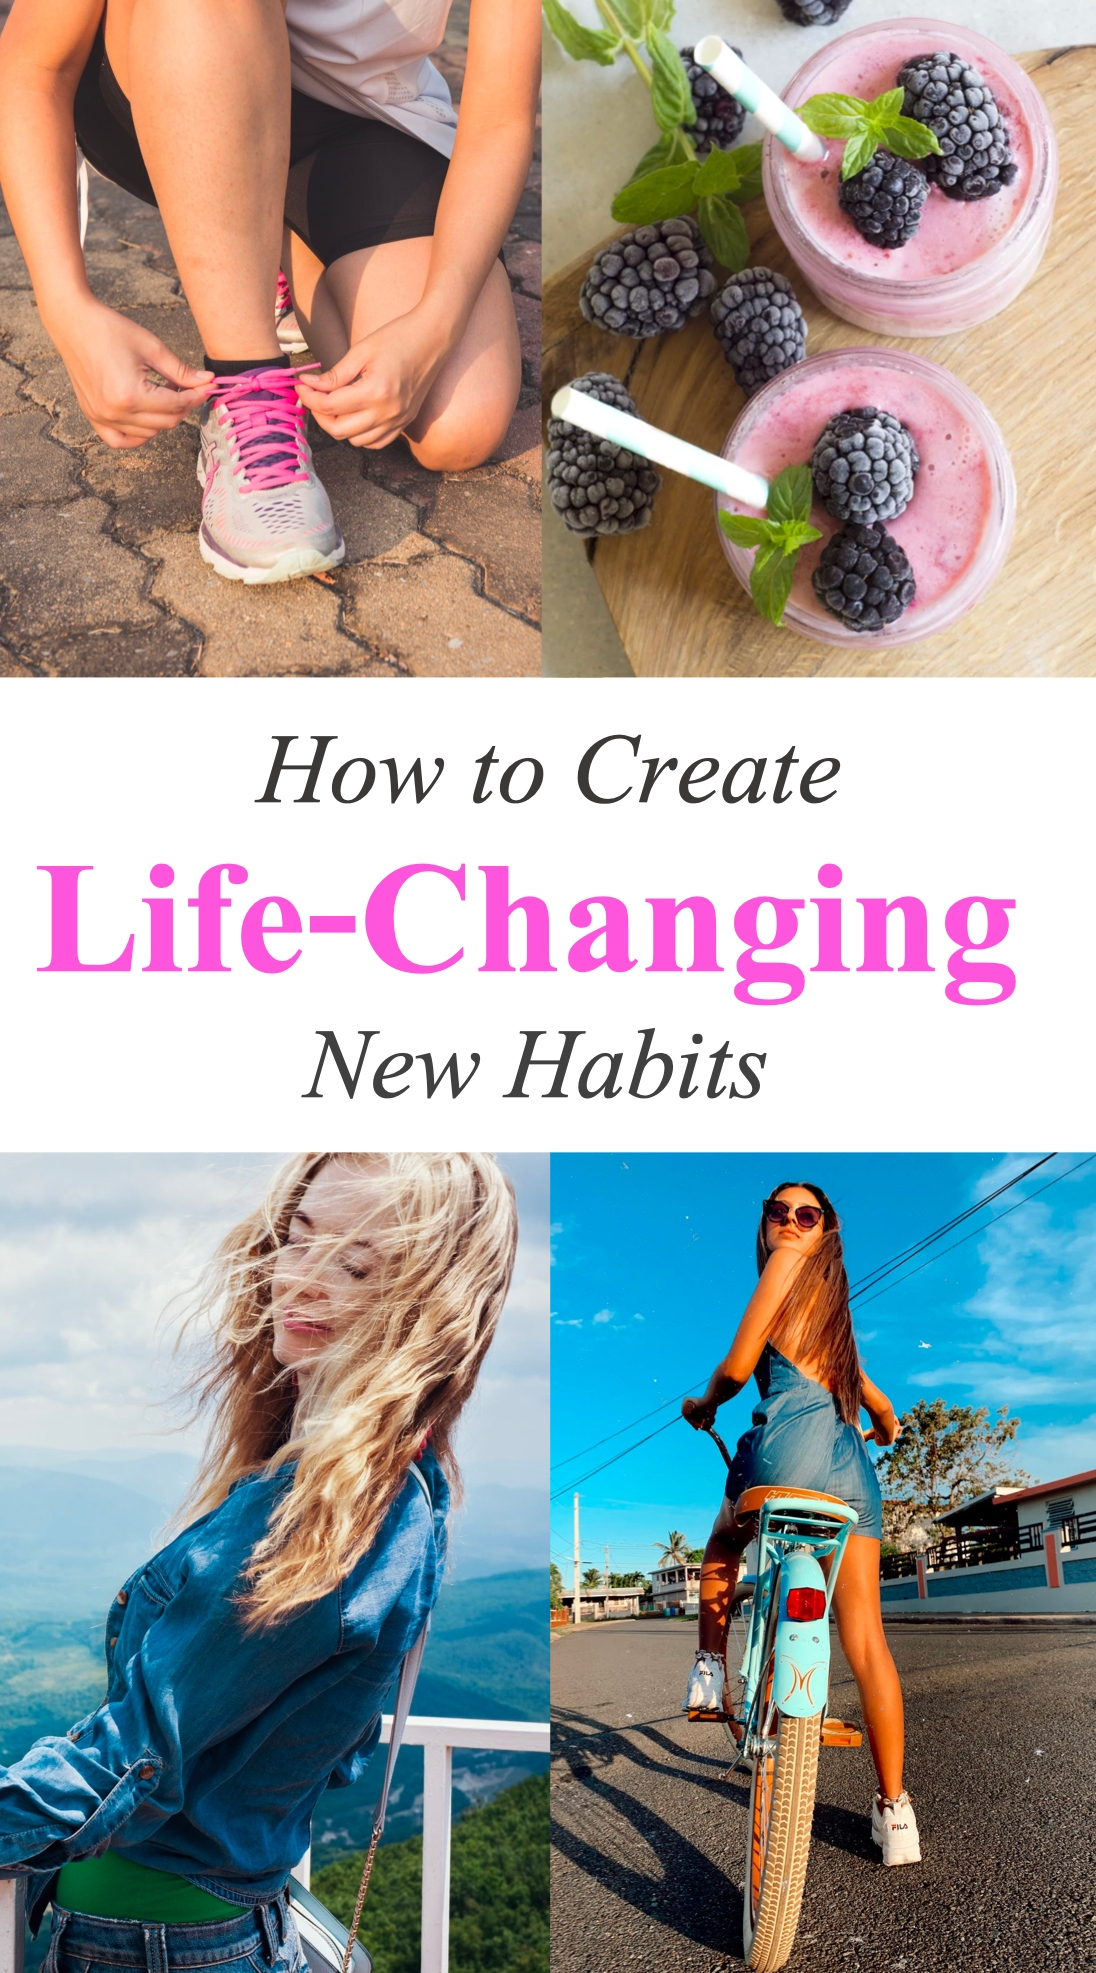 Pin Design Studio - How to Create Life-Changing New Habits